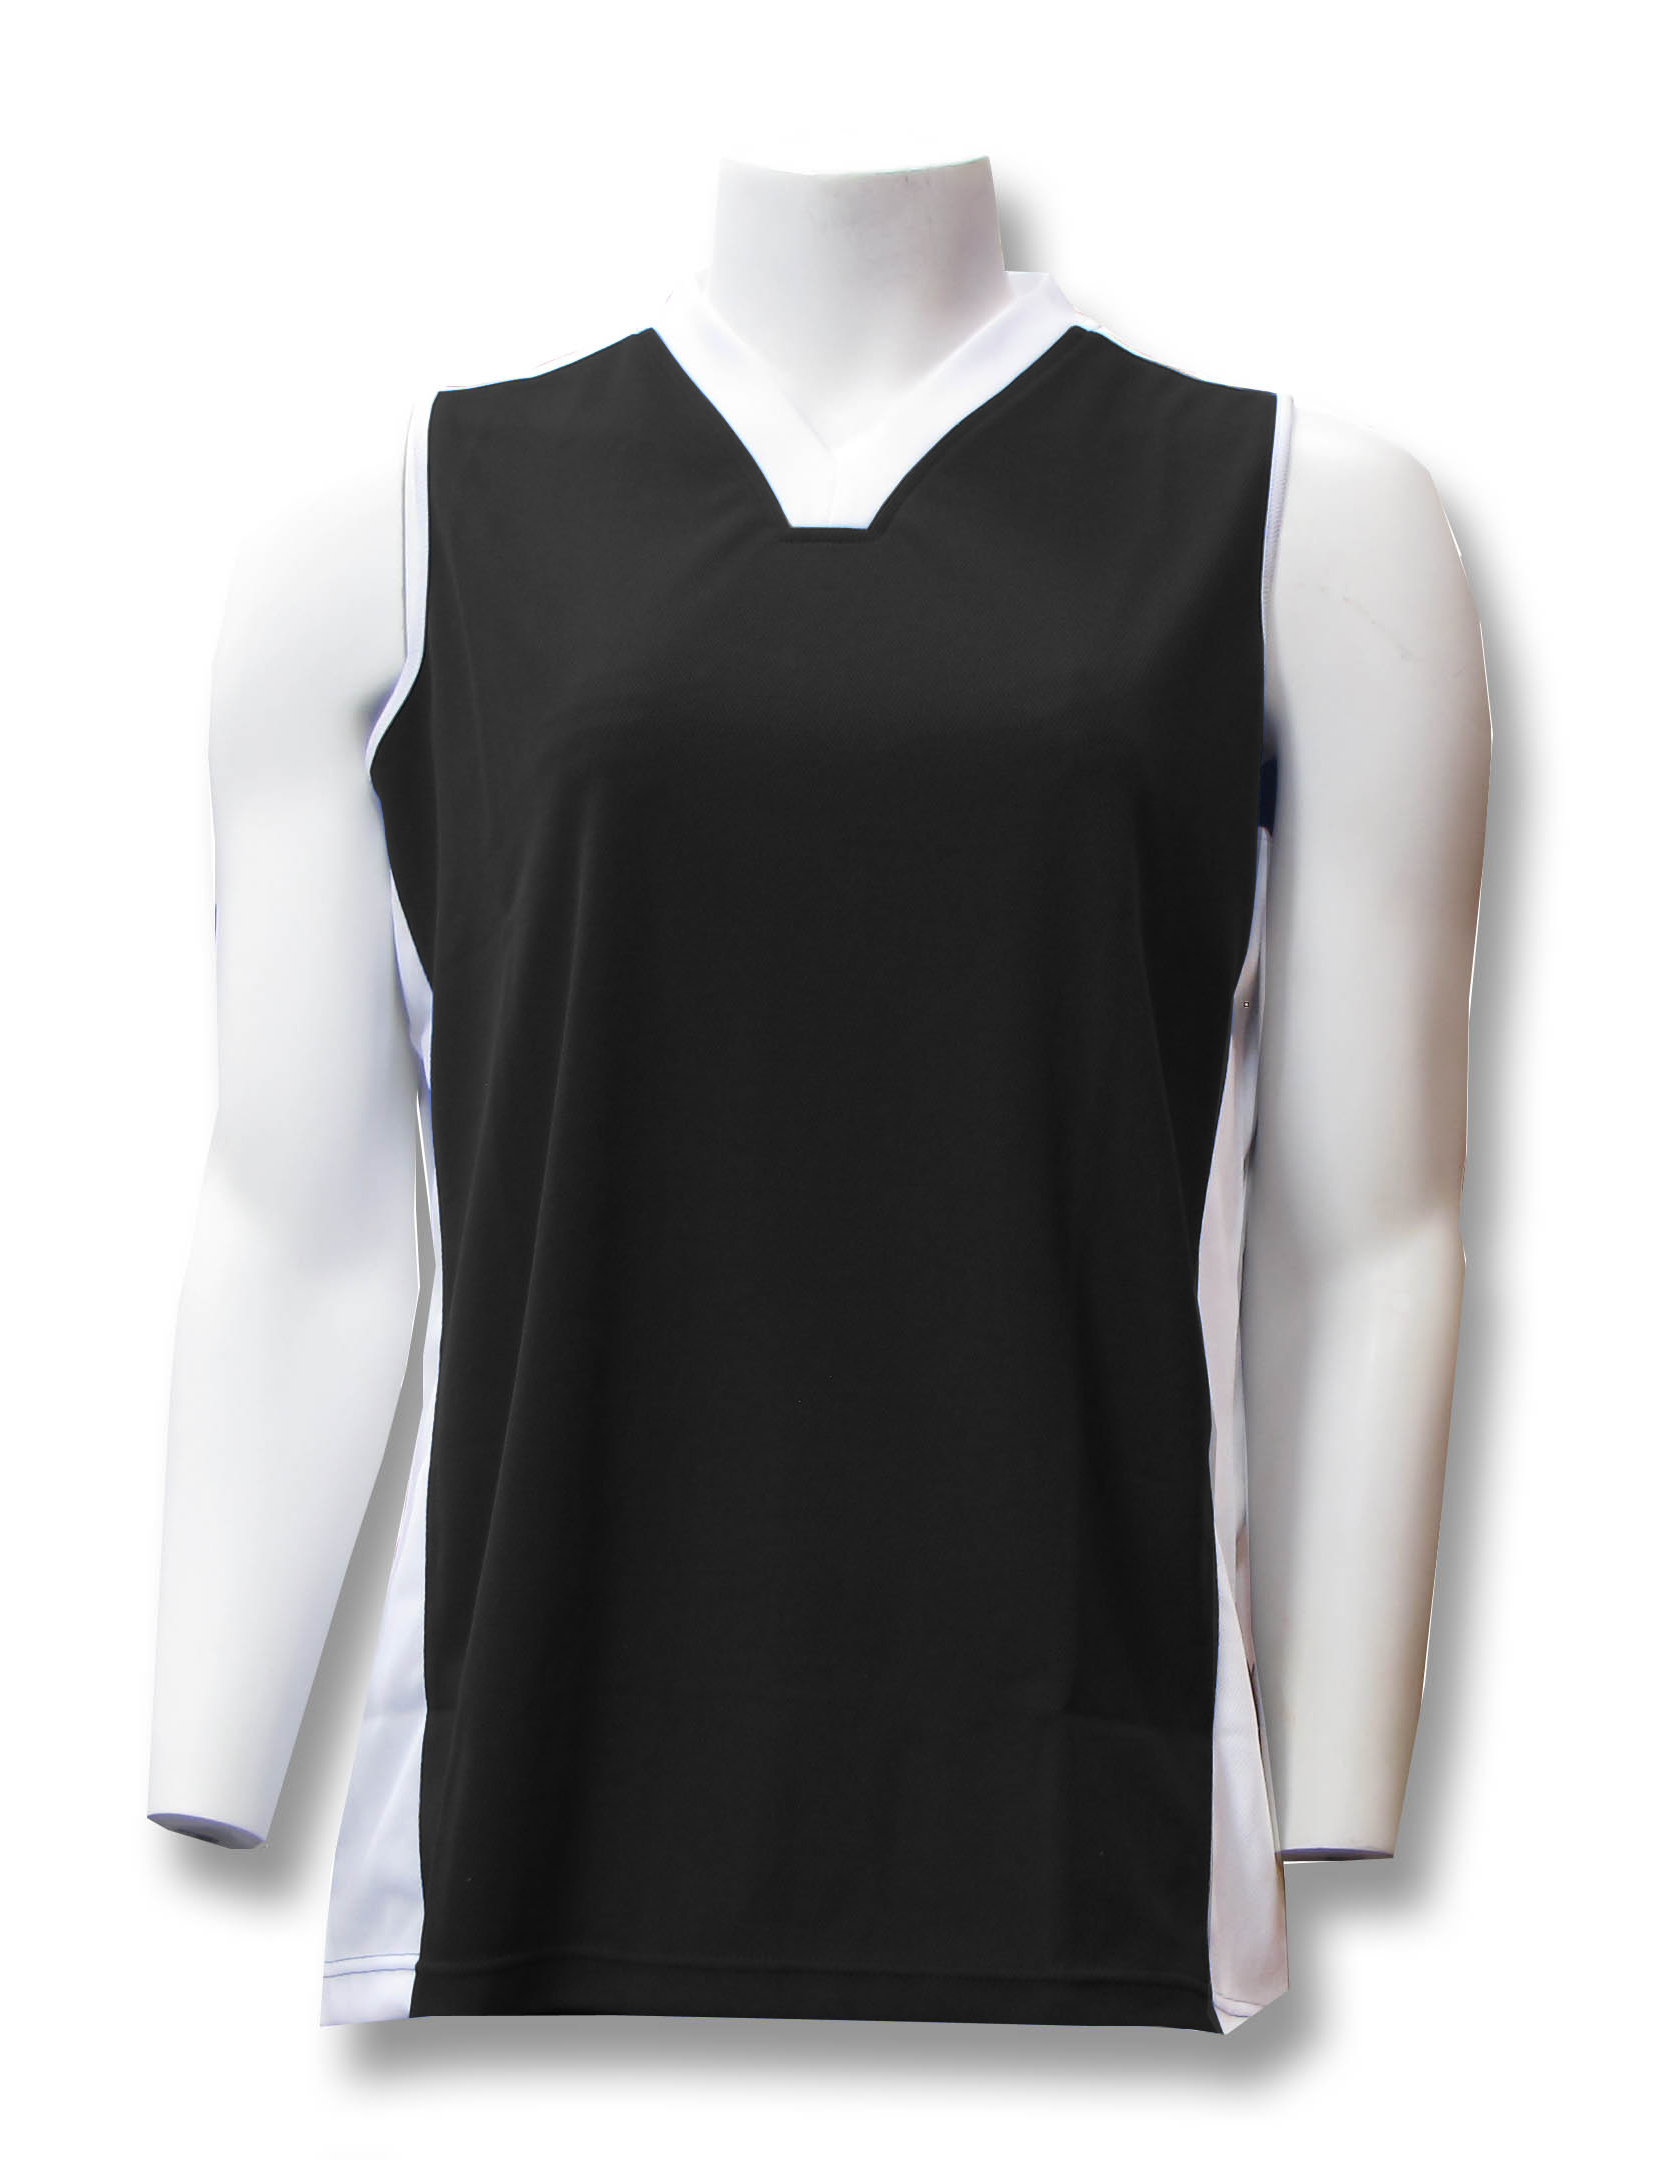 Milo women's sleeveless soccer jersey in black by Code Four Athletics